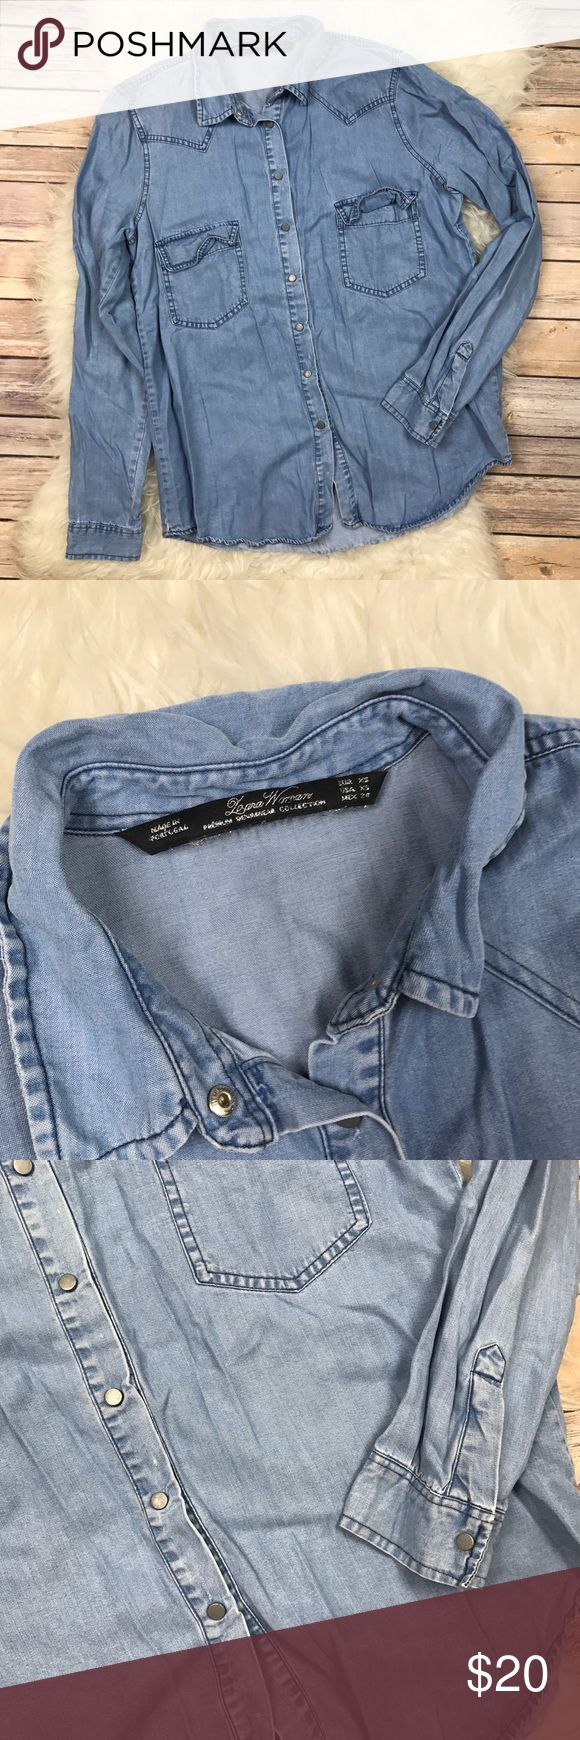 """Zara Woman Denim Collection Chambray Shirt Good condition Zara Woman Denim Collection Chambray shirt. Size XS. Cotton. Bust 38"""", length at longest 25"""". No trades, offers welcome. Zara Tops Button Down Shirts"""